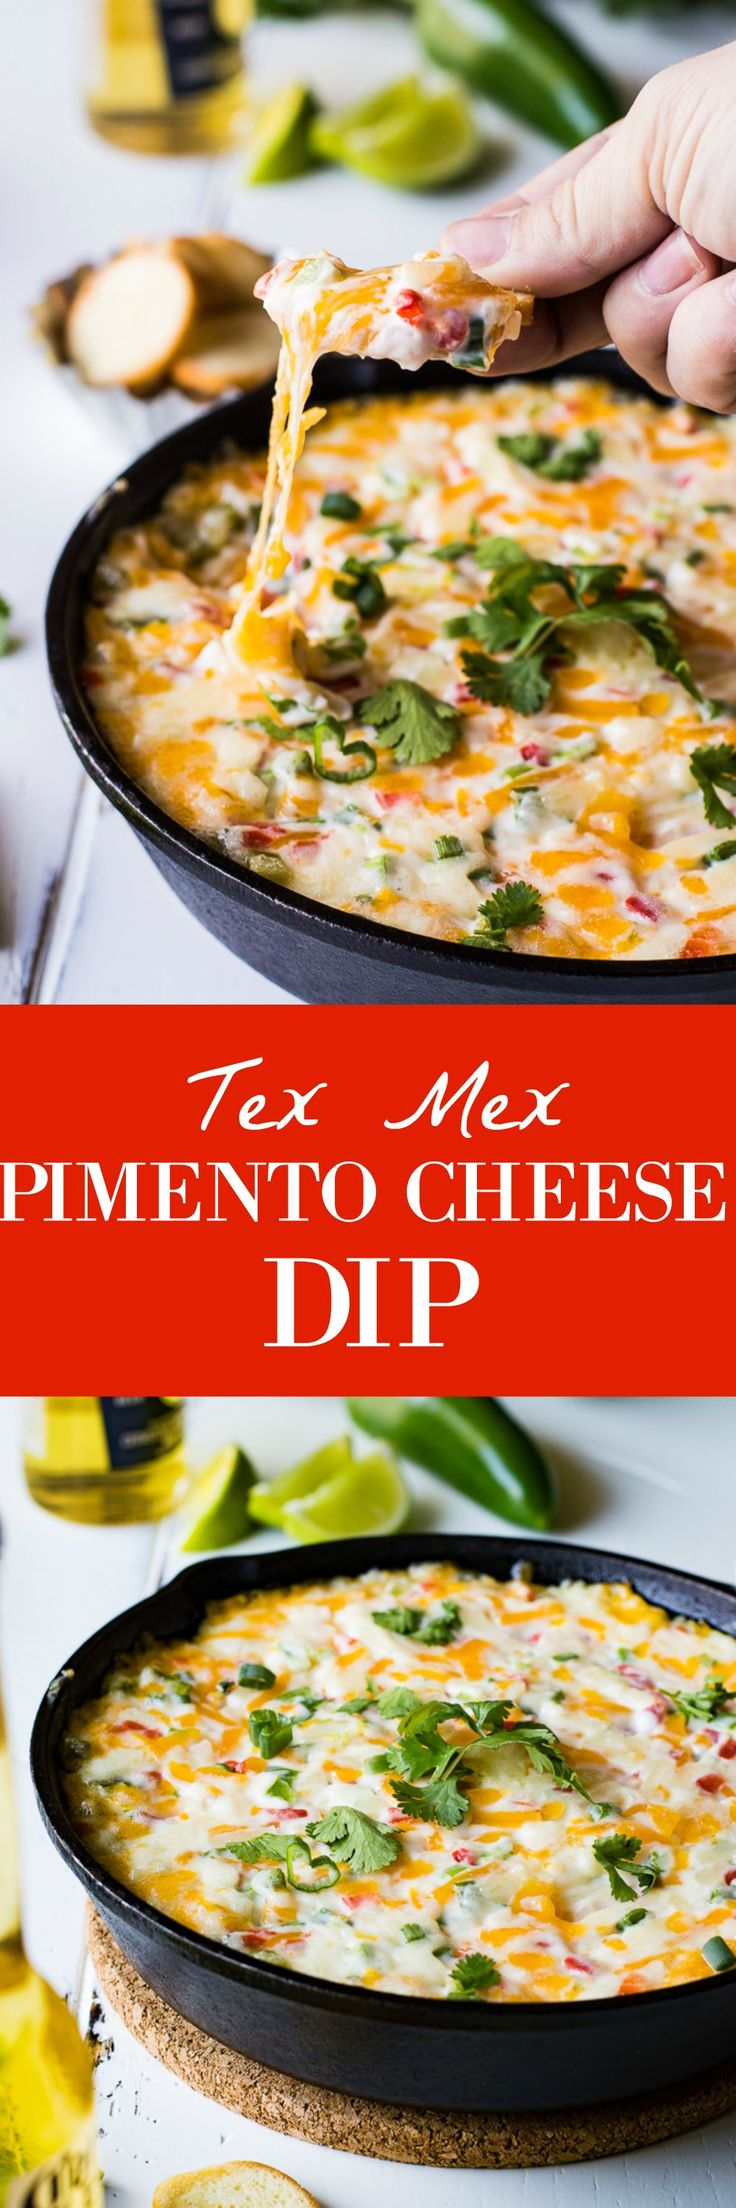 Tex Mex style Hot Pimento Cheese Dip is the ultimate in hot cheese dip recipes!  Loaded with sweet pimento peppers, ja...